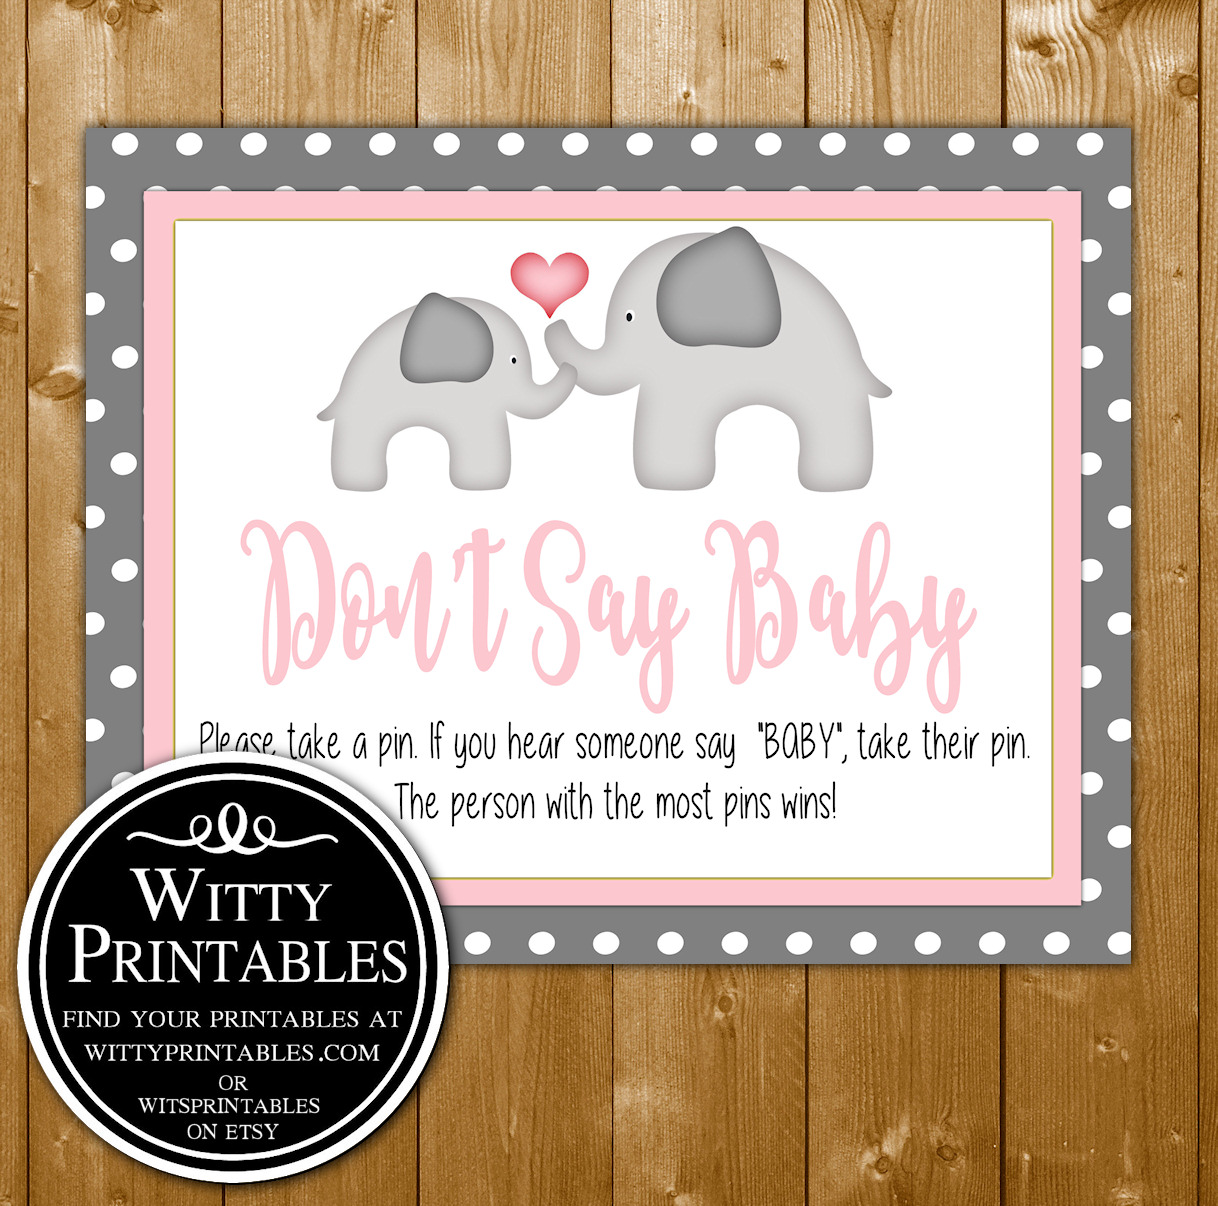 photograph regarding Don T Say Baby Printable titled Dont Say Little one Youngster Shower Match Printable Red Elephant Topic for a Woman Youngster Shower